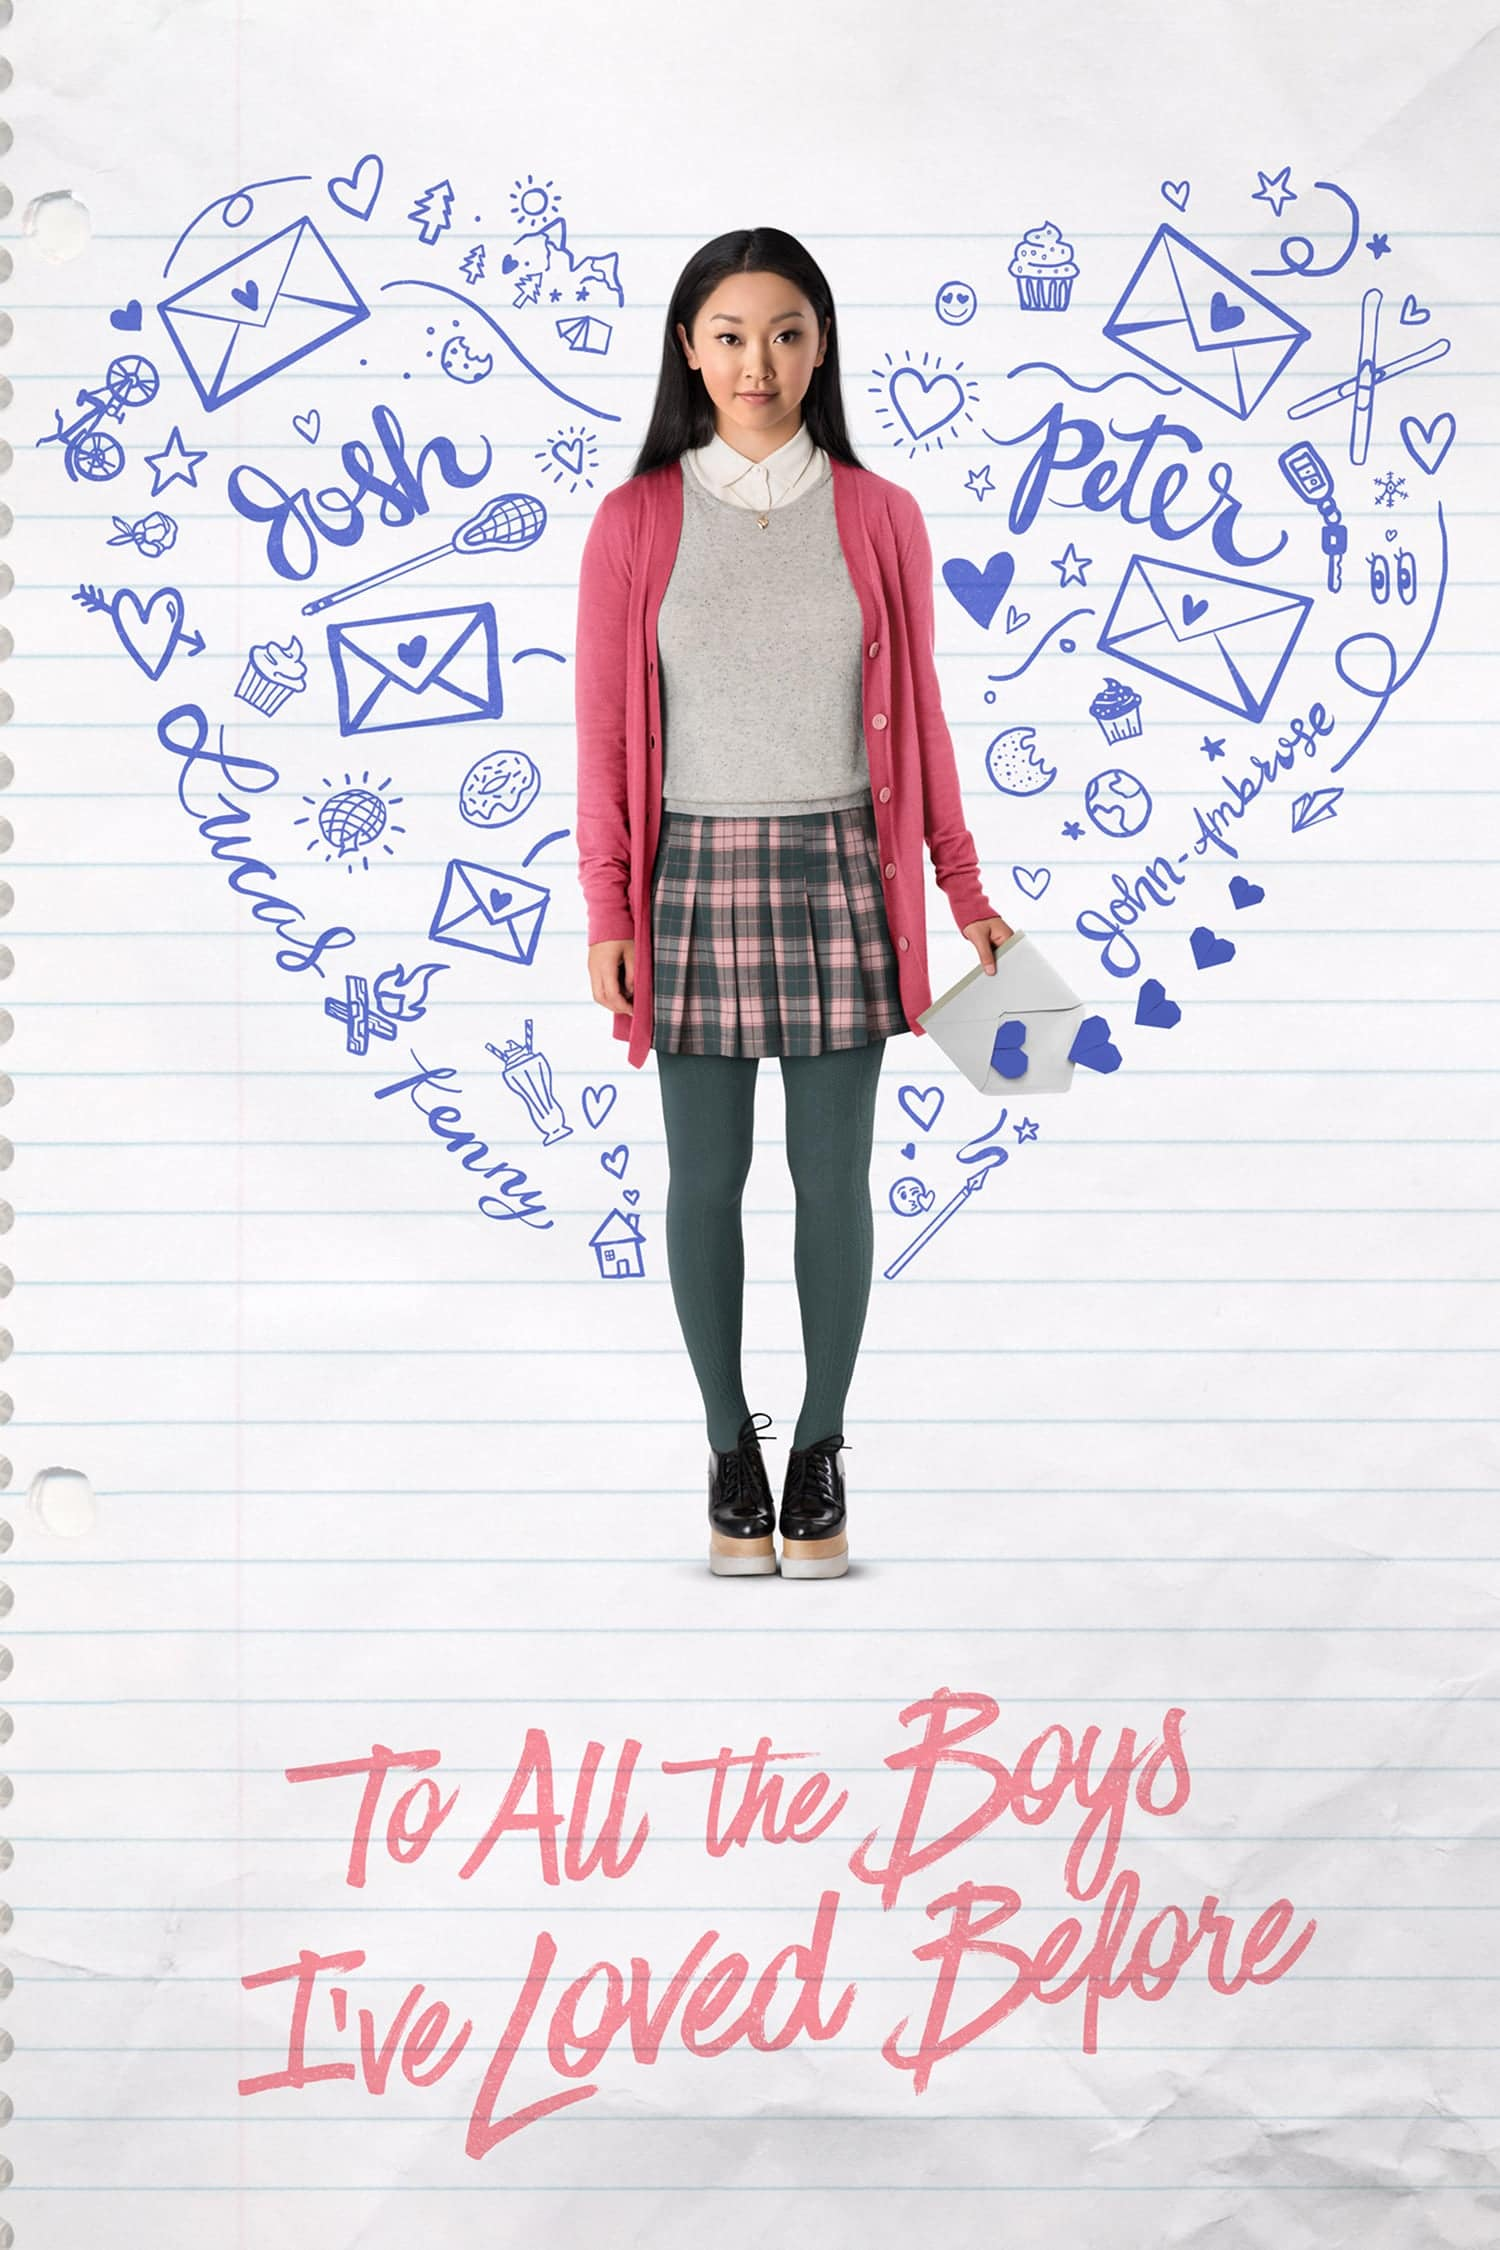 """Plakat von """"To All the Boys I've Loved Before"""""""